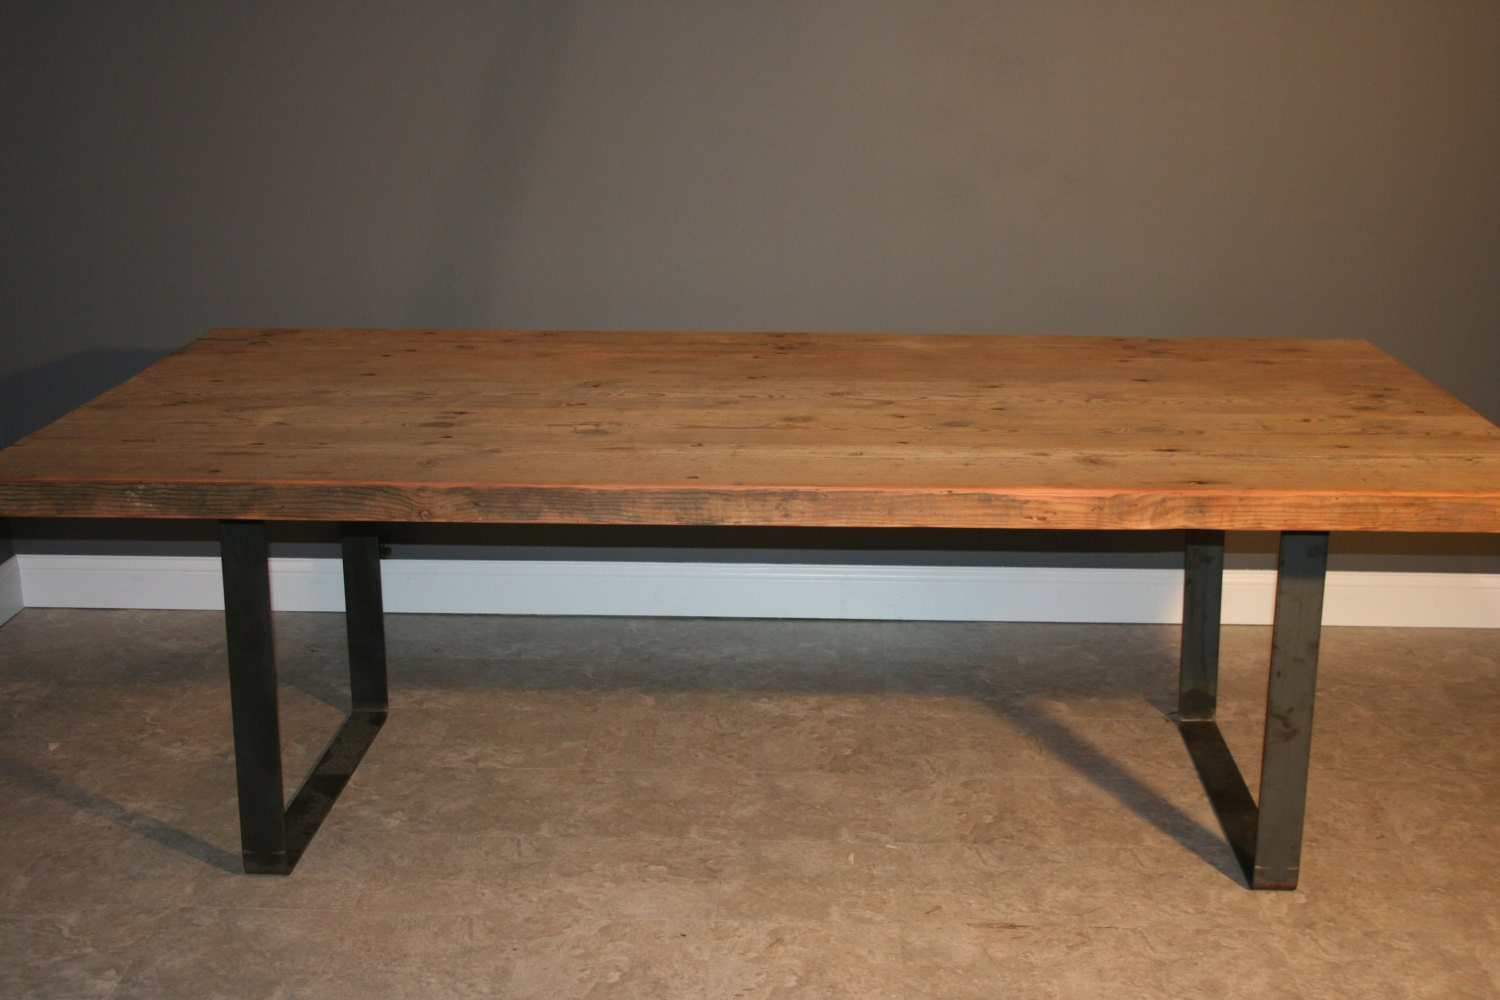 Modern And Reclaimed Wood Dining Table By Urbanwoodfurnishings